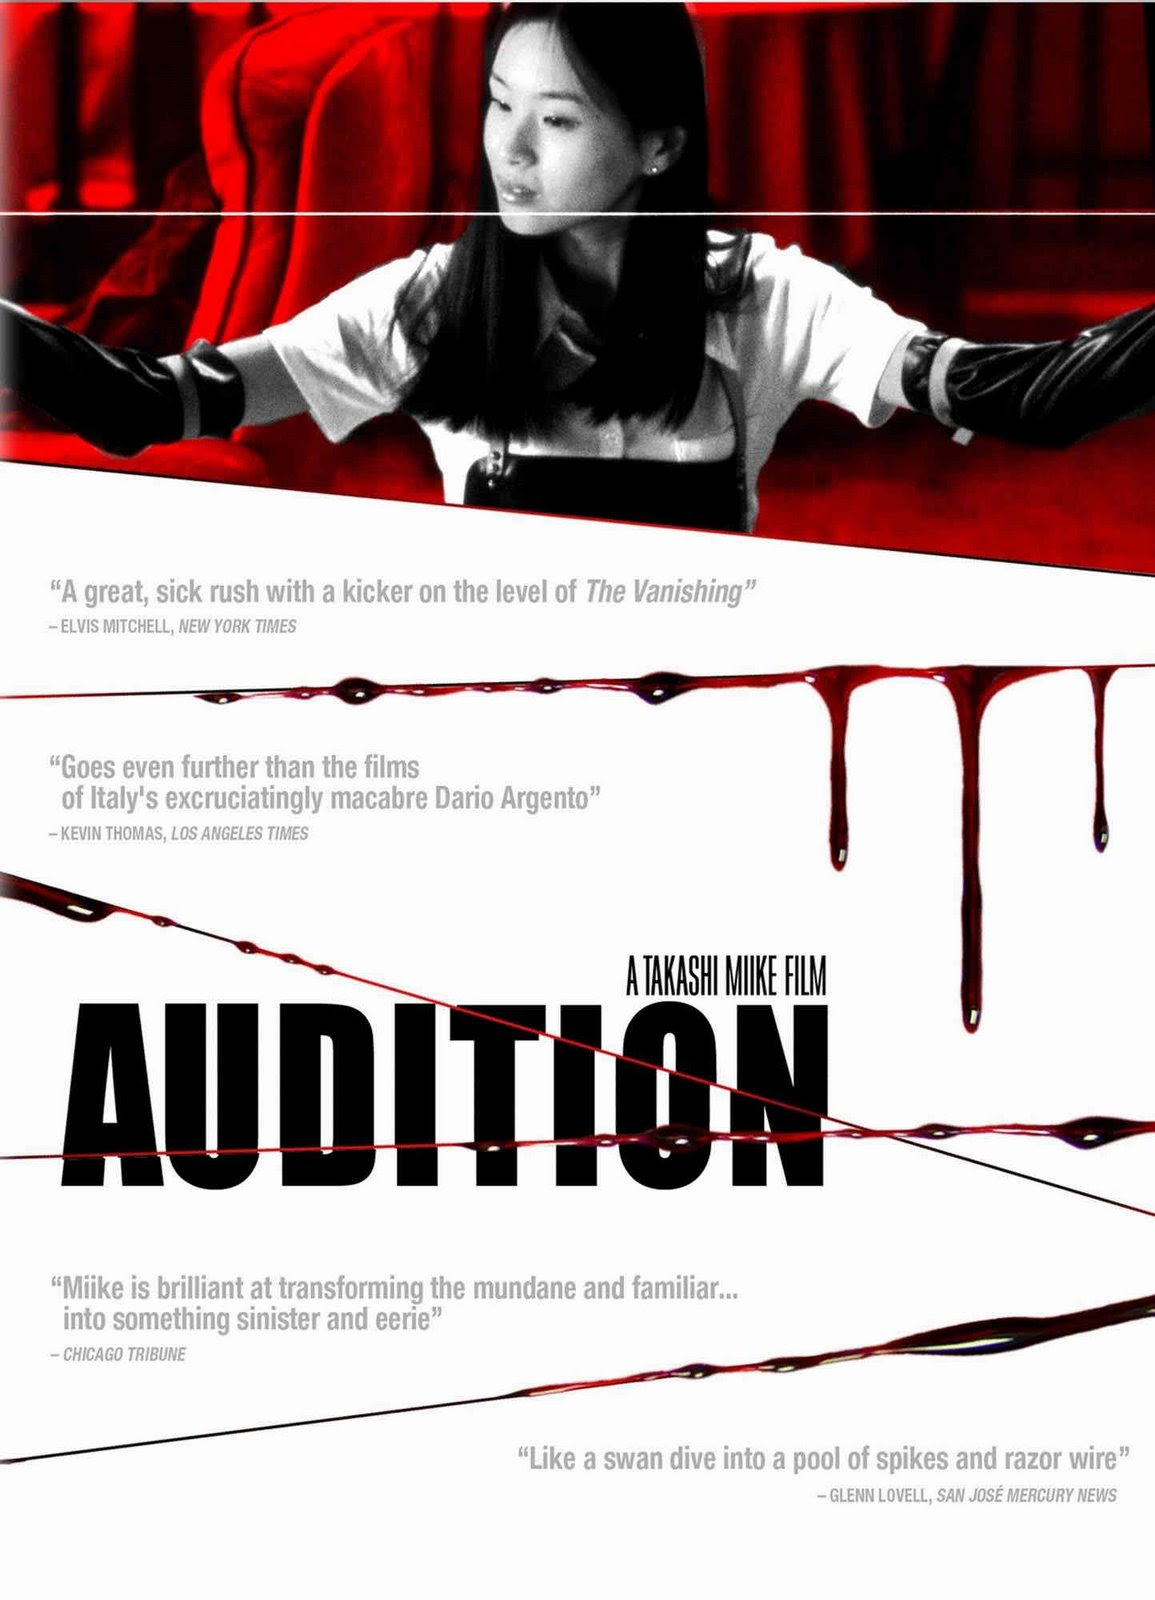 http://g1rm.files.wordpress.com/2013/10/audition-poster.jpg